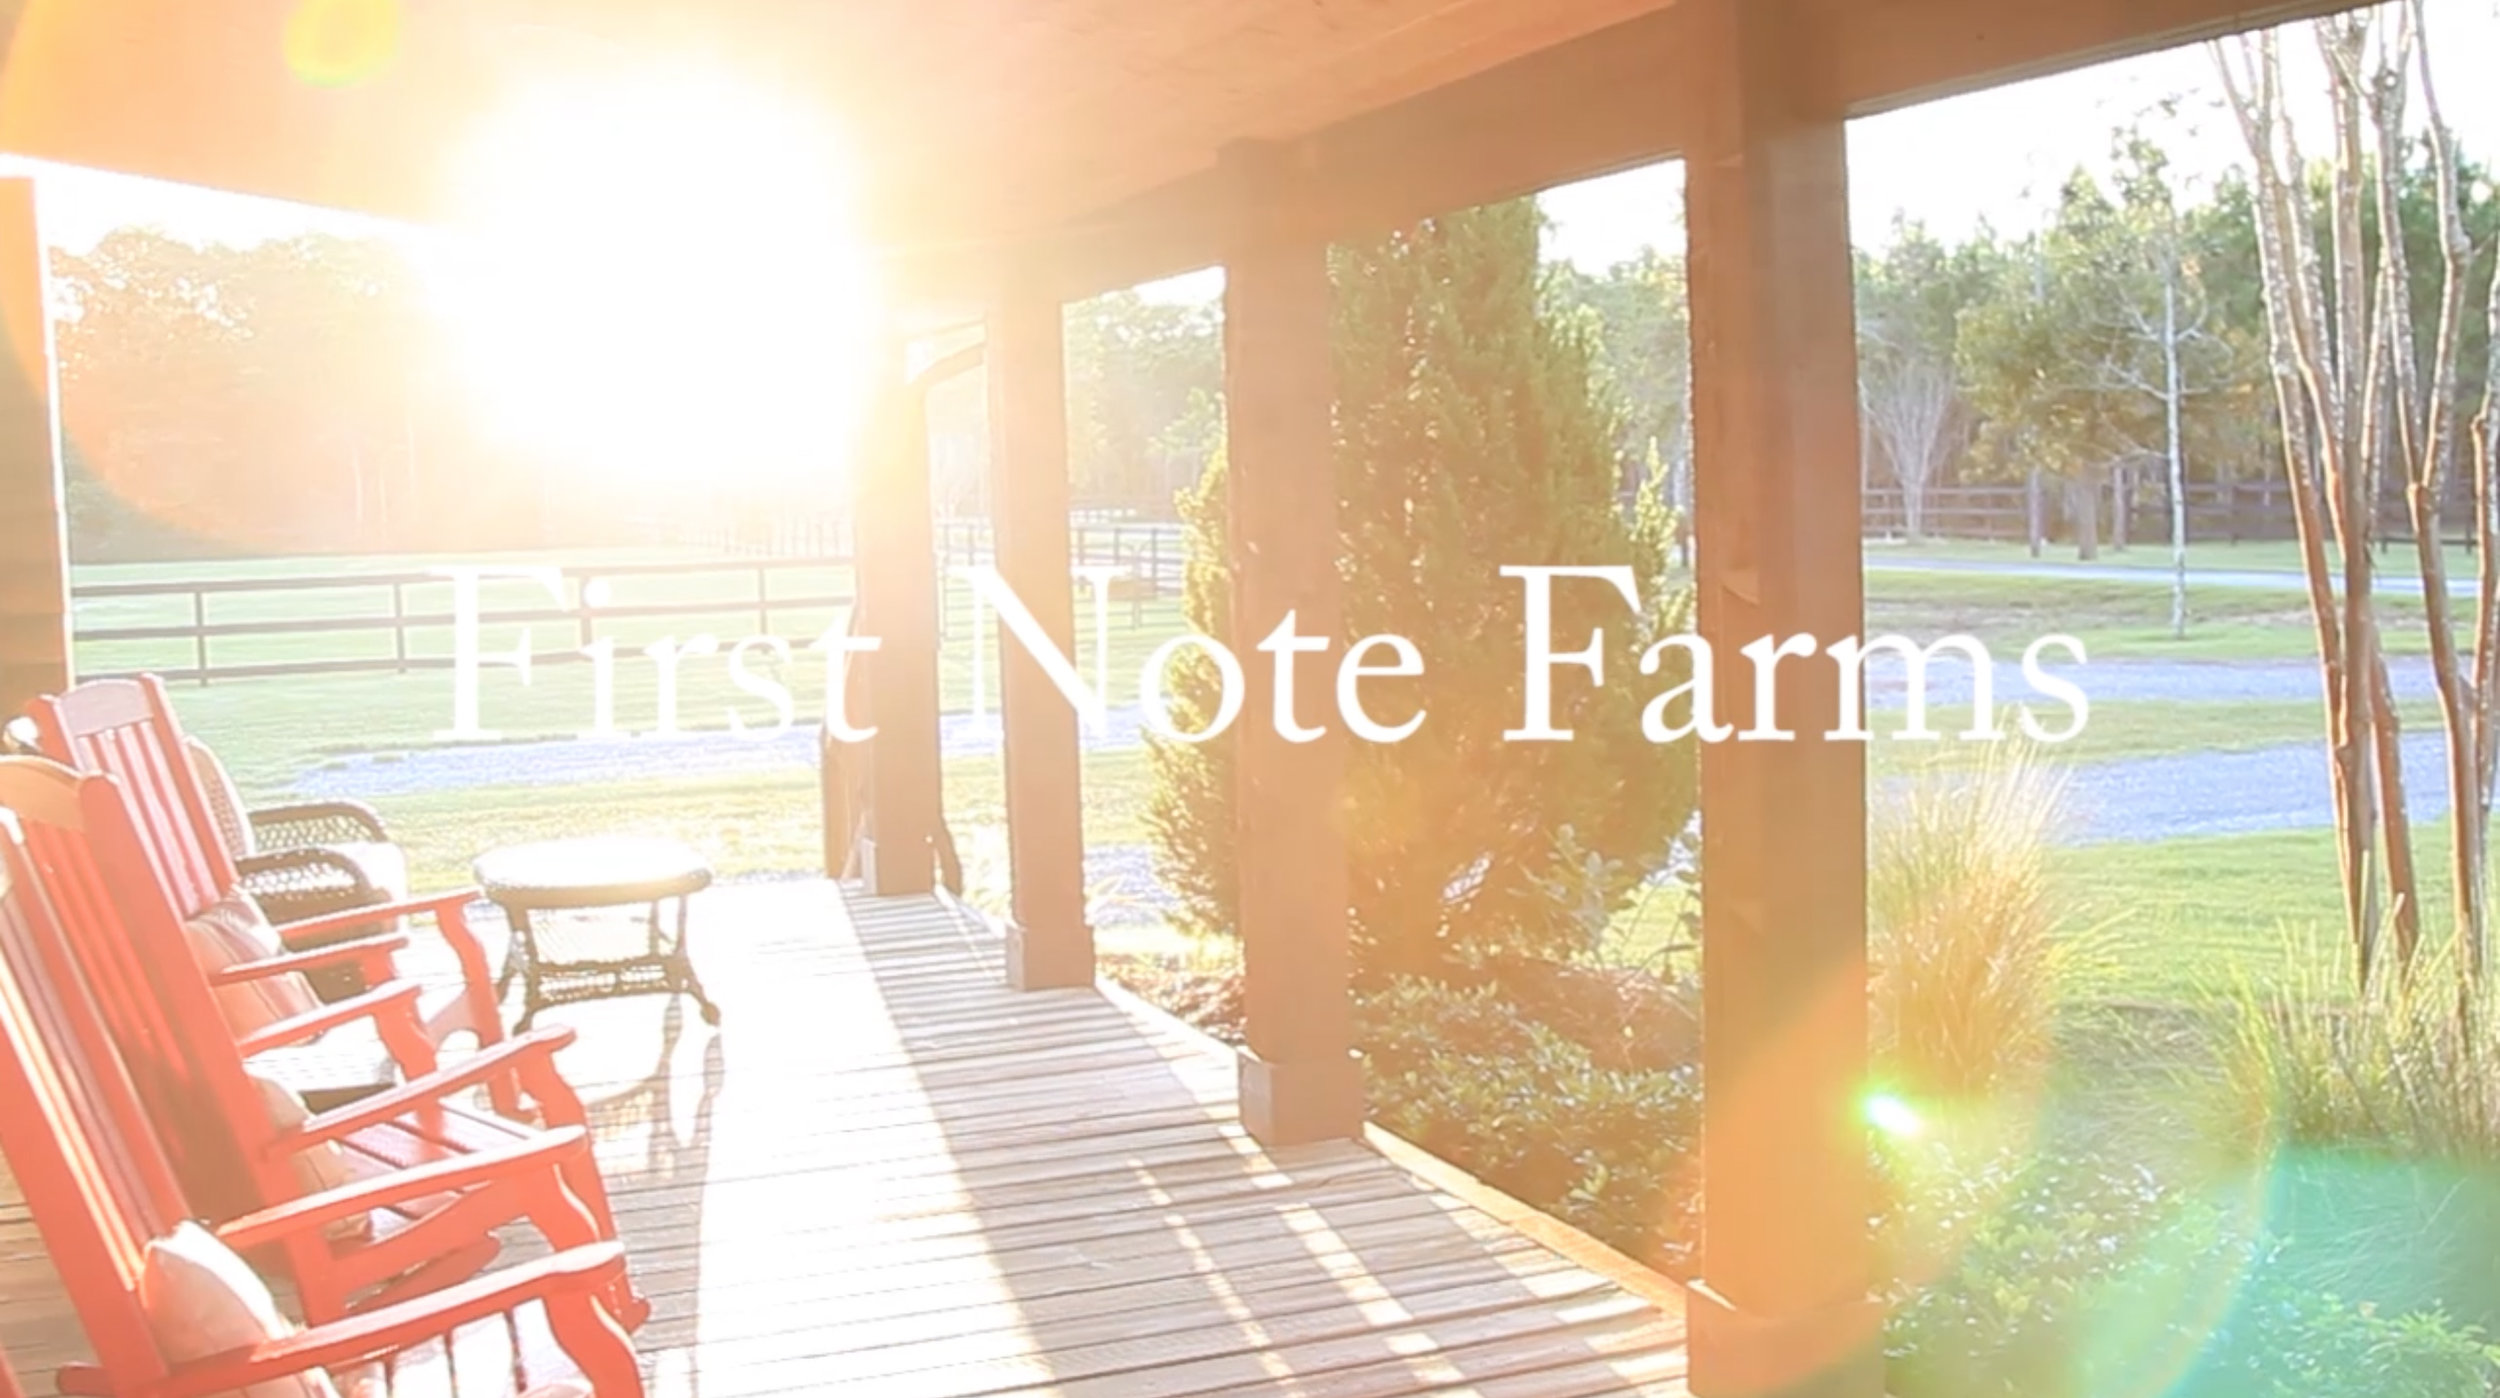 First Note Farms